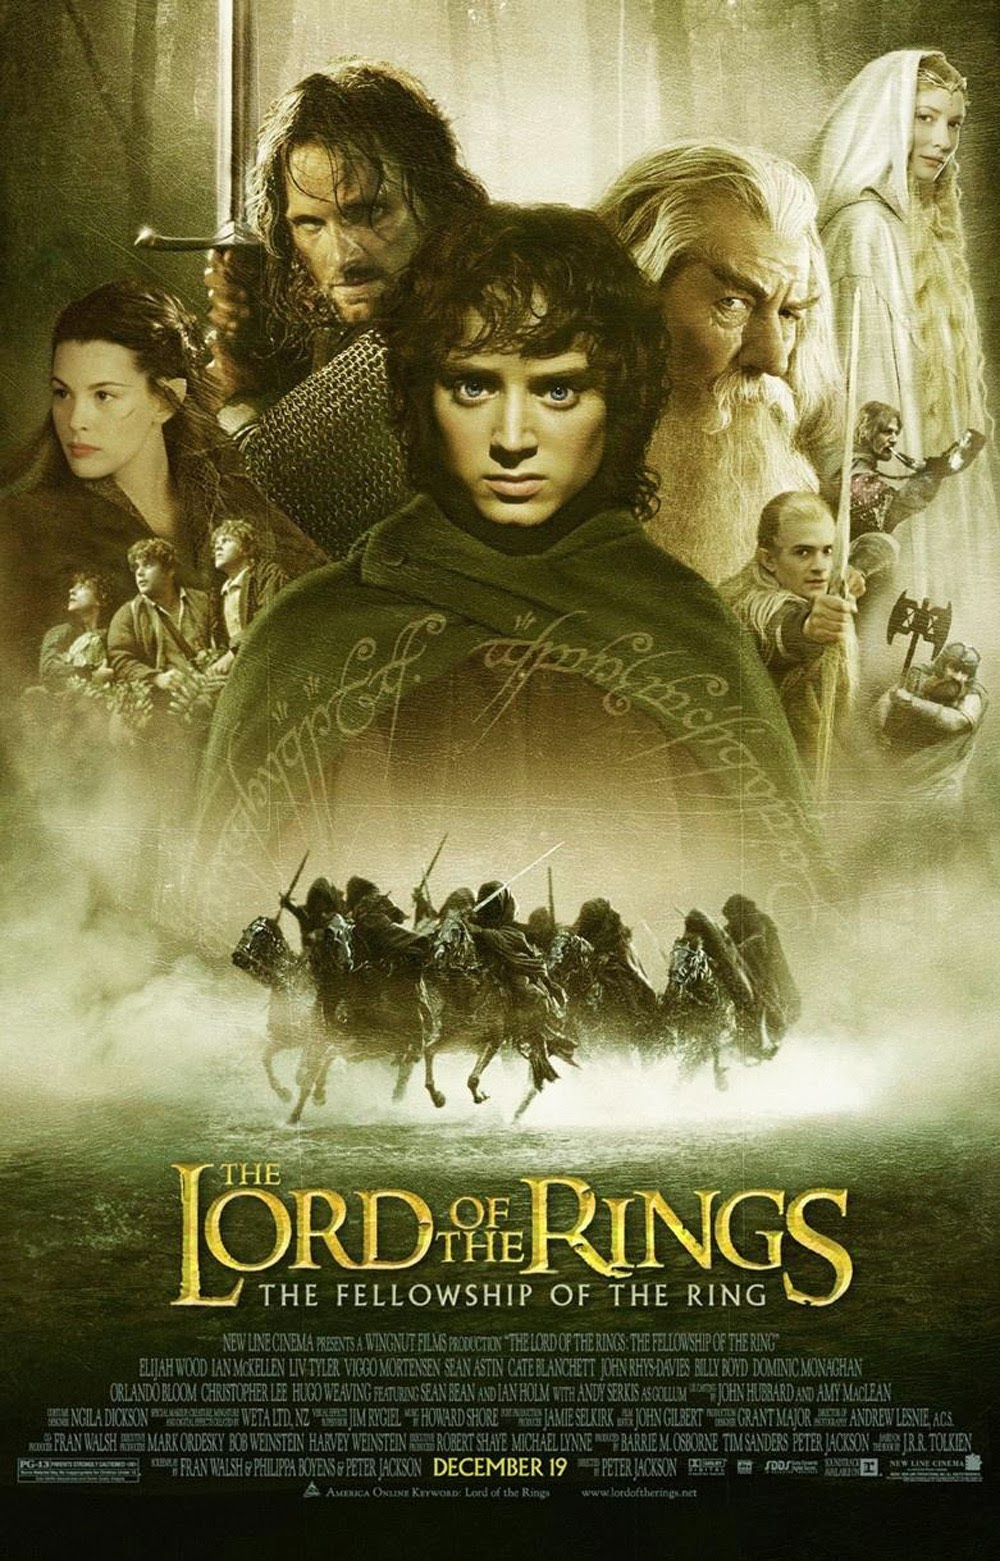 Chúa Tể Những Chiếc Nhẫn 1 - The Lord of the Rings: The Fellowship of the Ring